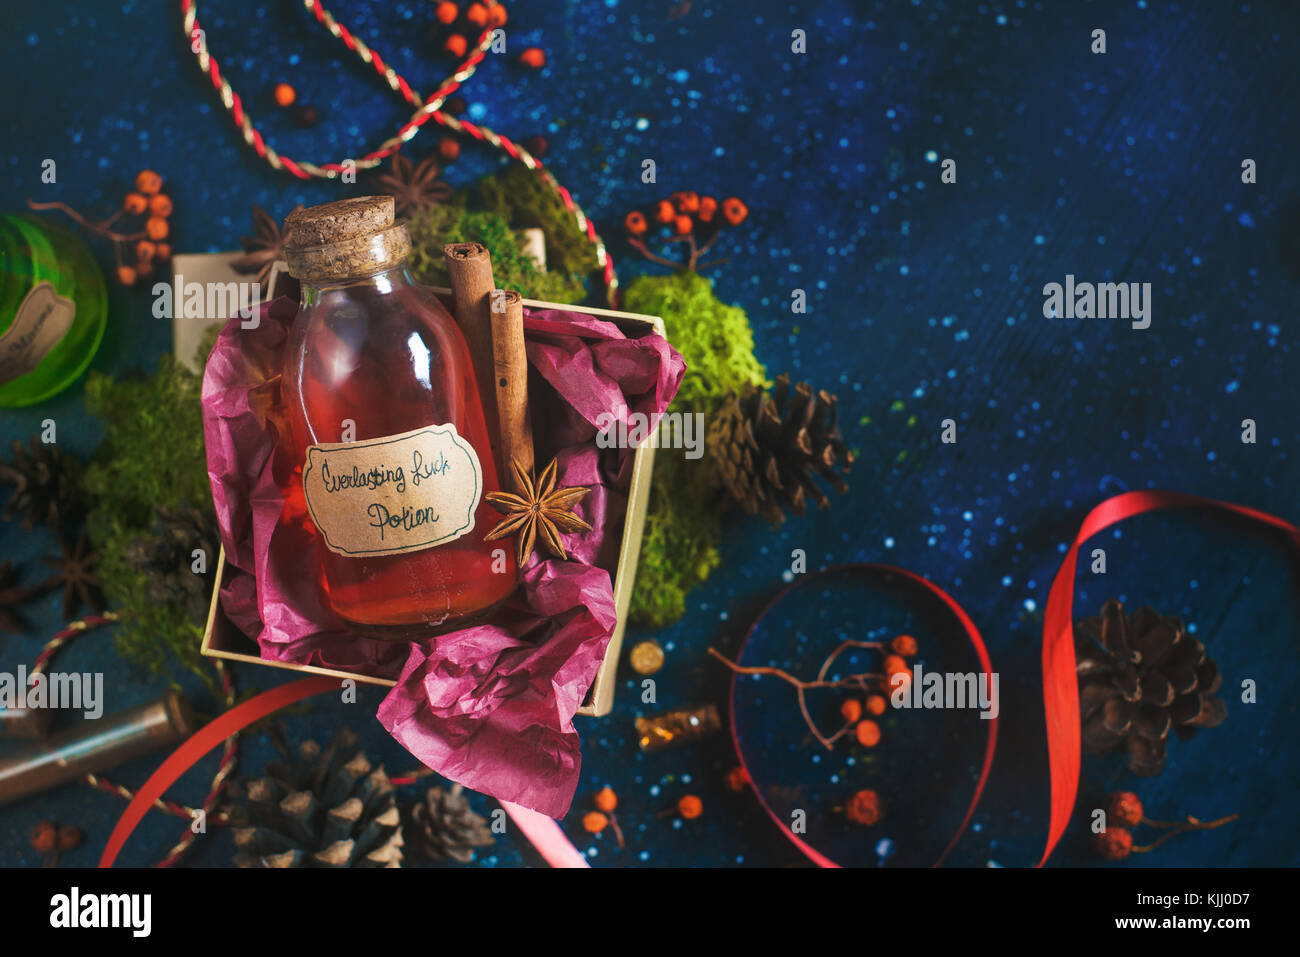 Present box with a bottle of Luck Potion. Magical still life with potion bottles, ingredients and steam. Best wishes - Stock Image